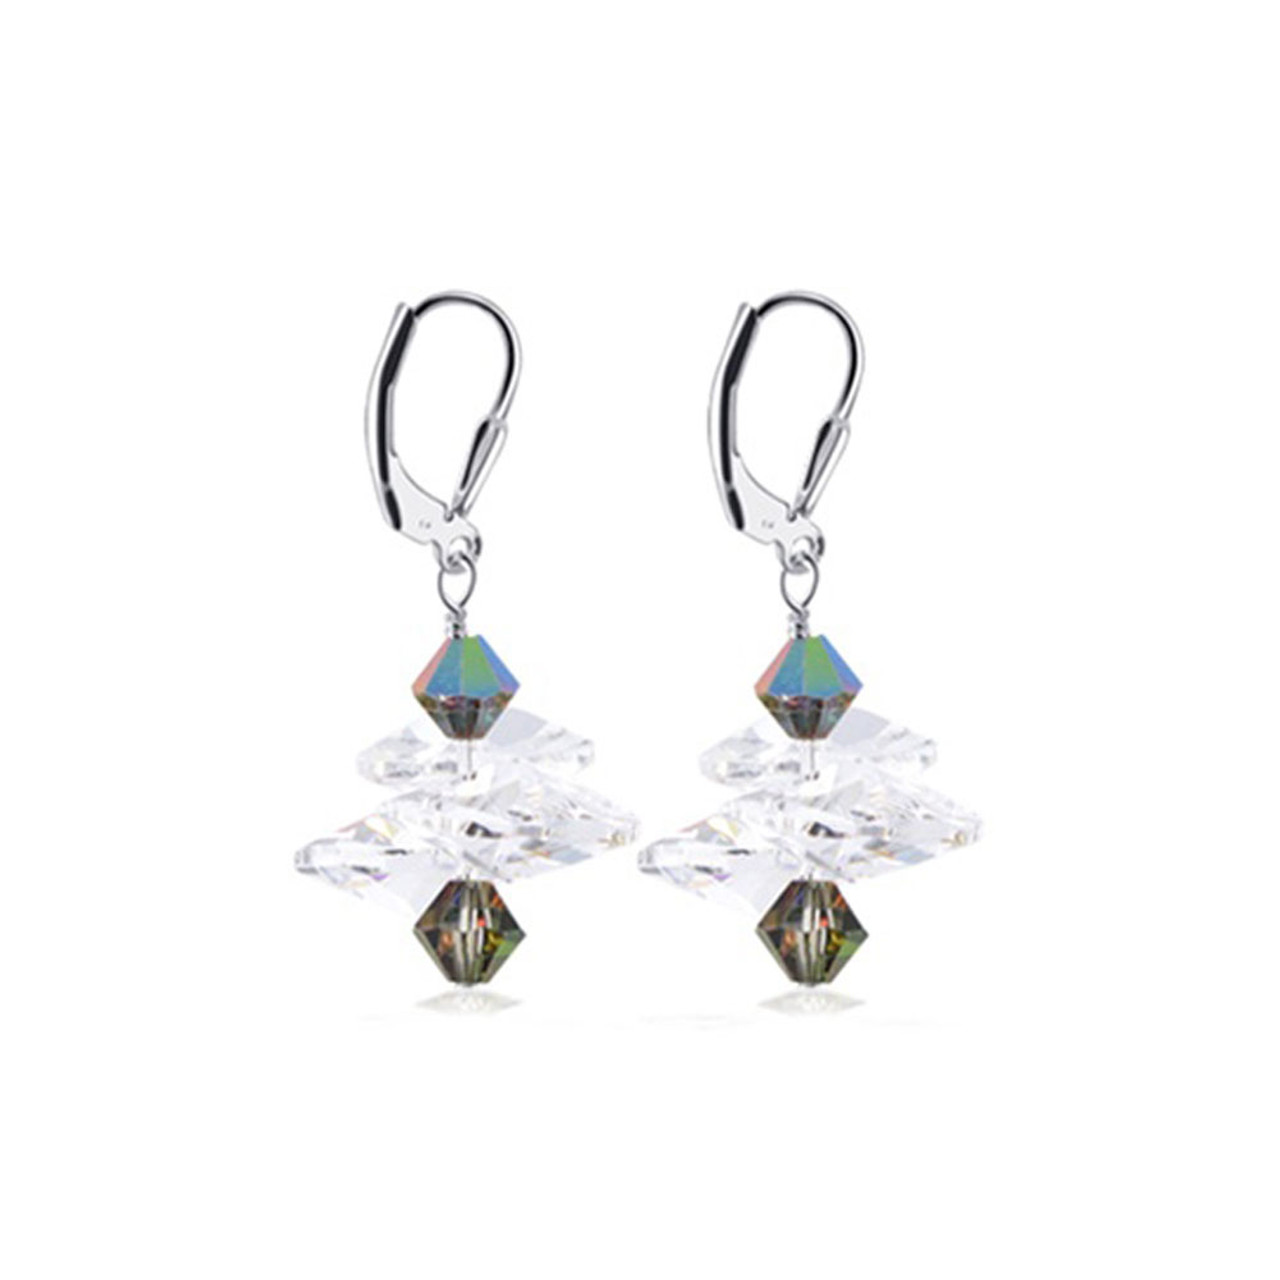 925 Silver Made with Swarovski Clear and Light Vitrail Crystal Drop Earrings